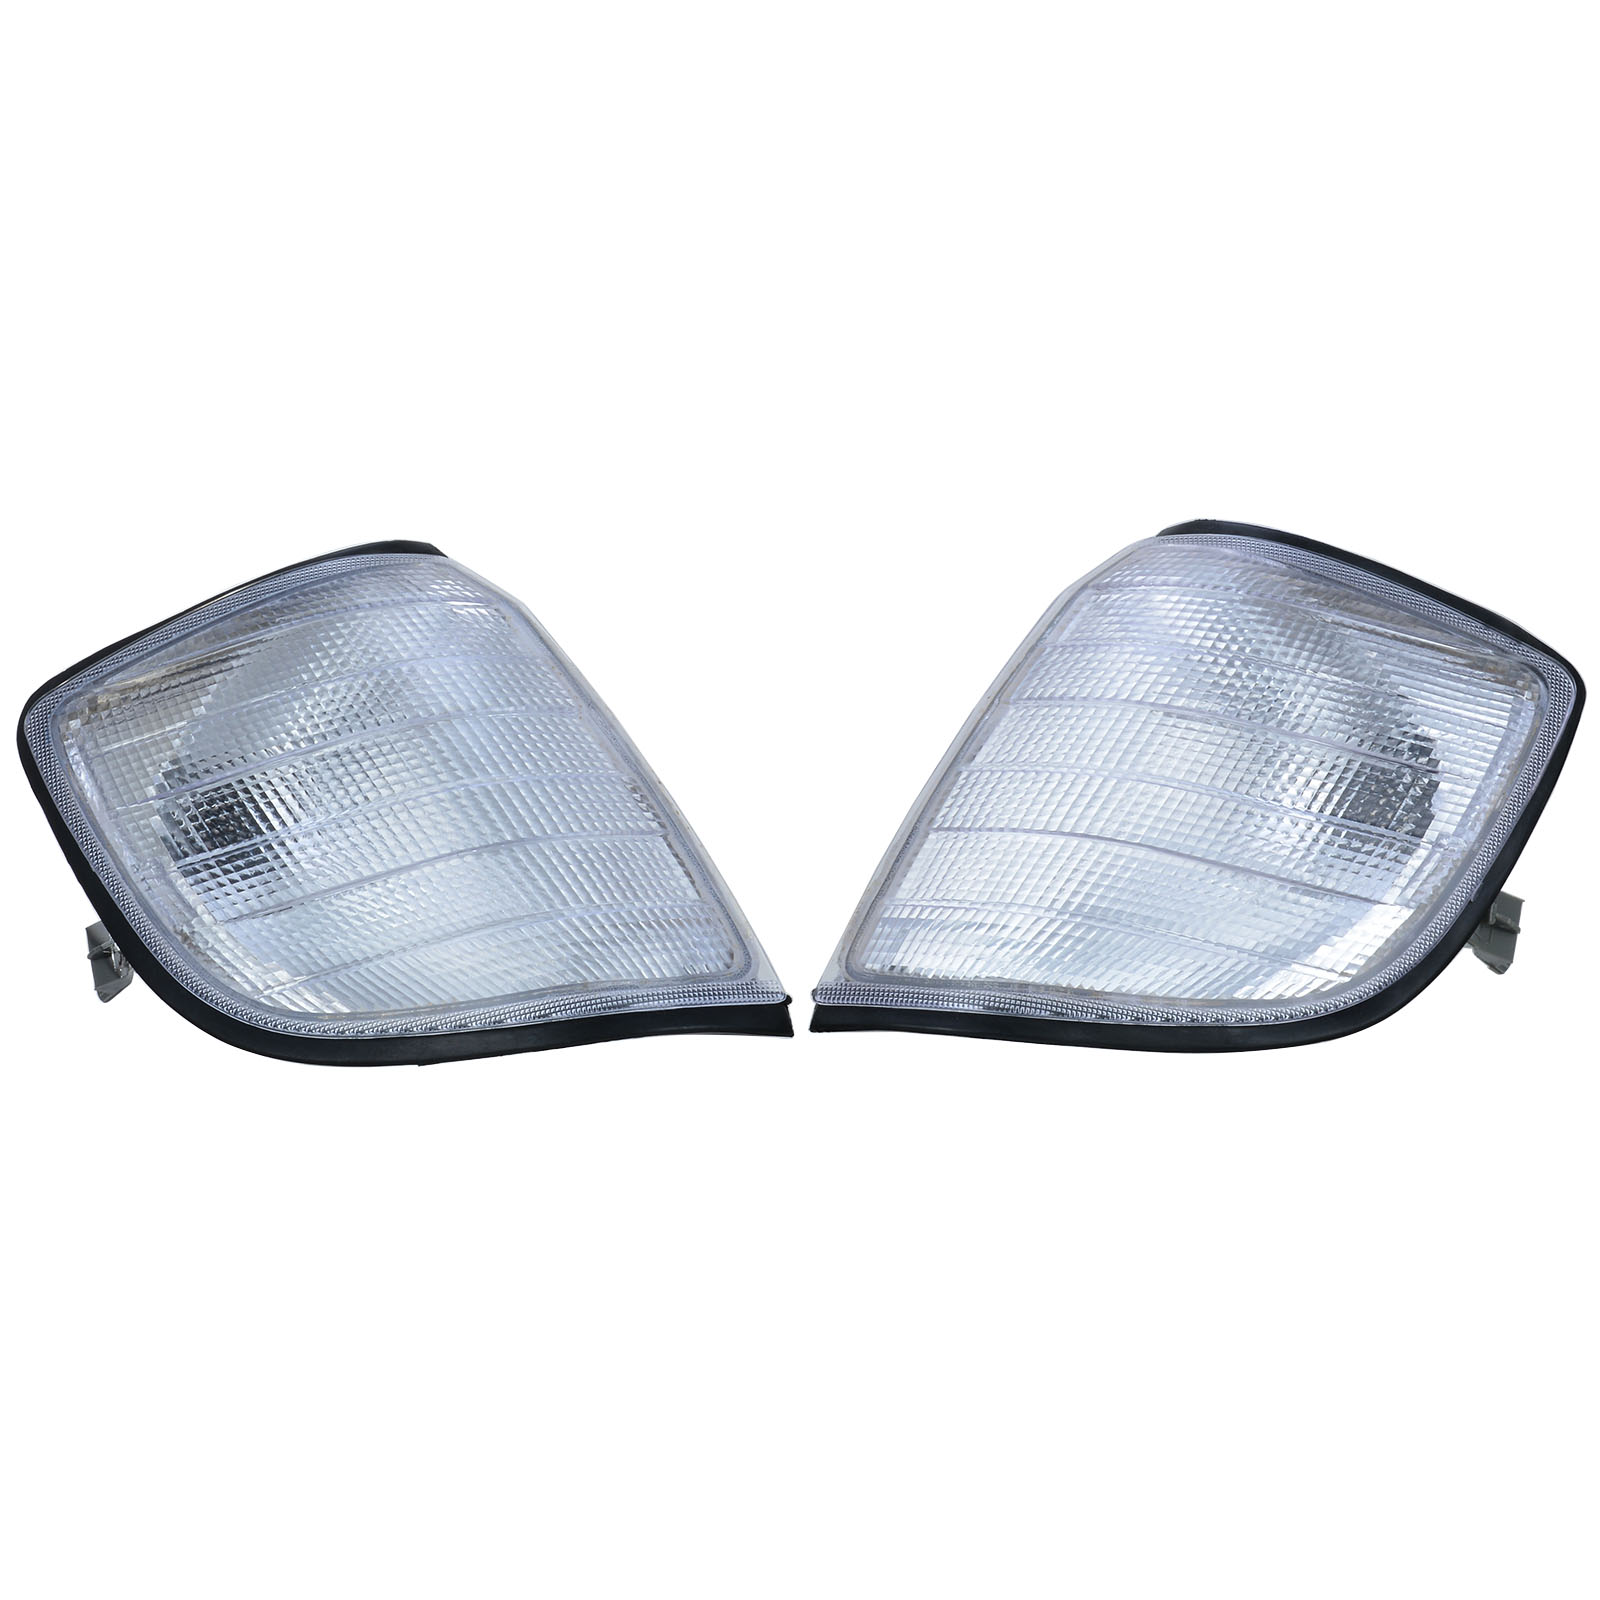 1 Pair Car Left Right Side Turn Signal Corner Light Clear Lens Lamp Replacement for Mercedes